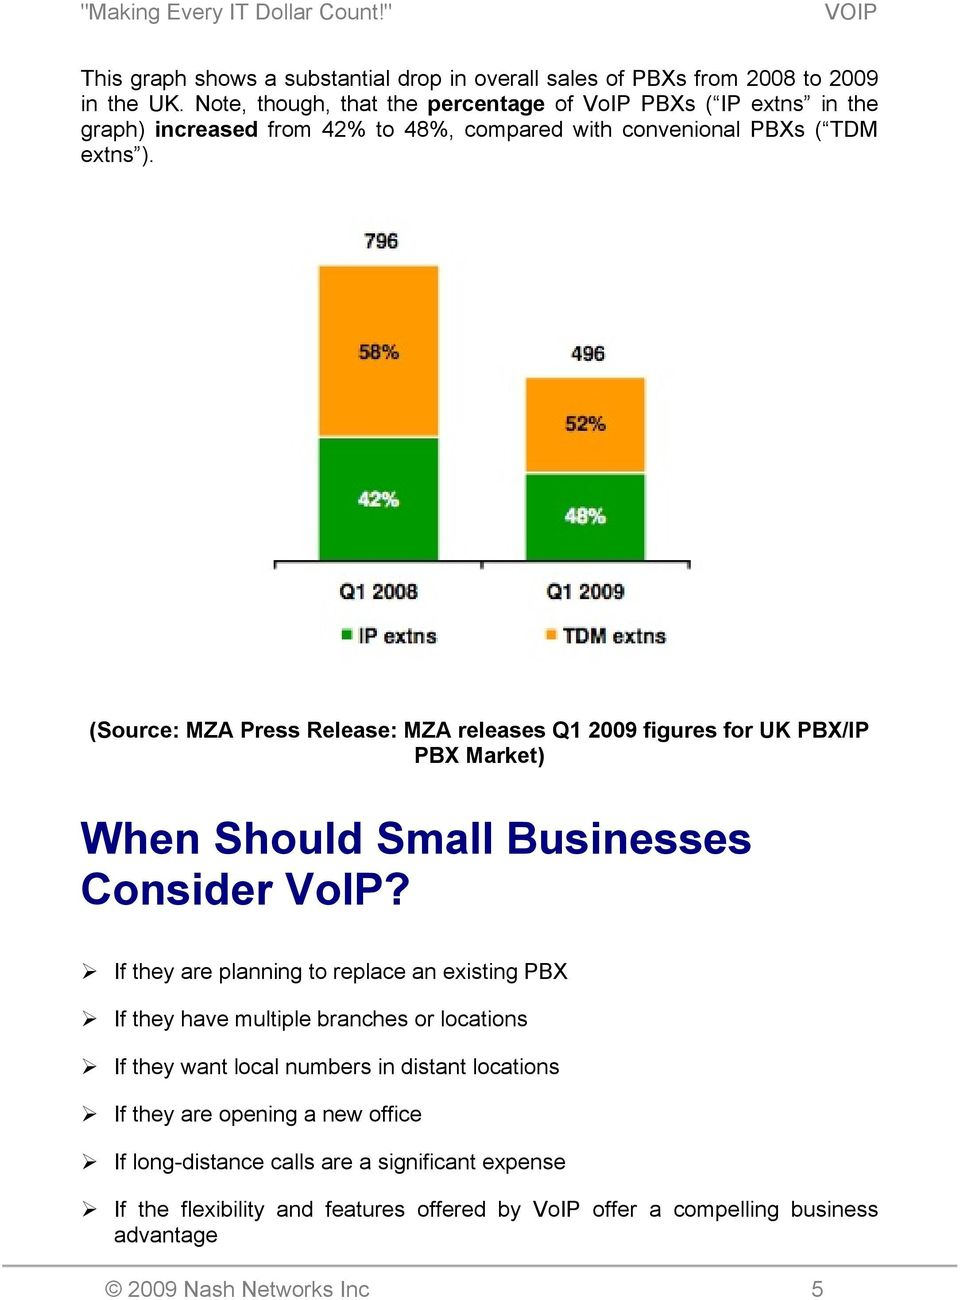 (Source: MZA Press Release: MZA releases Q1 2009 figures for UK PBX/IP PBX Market) When Should Small Businesses Consider VoIP?